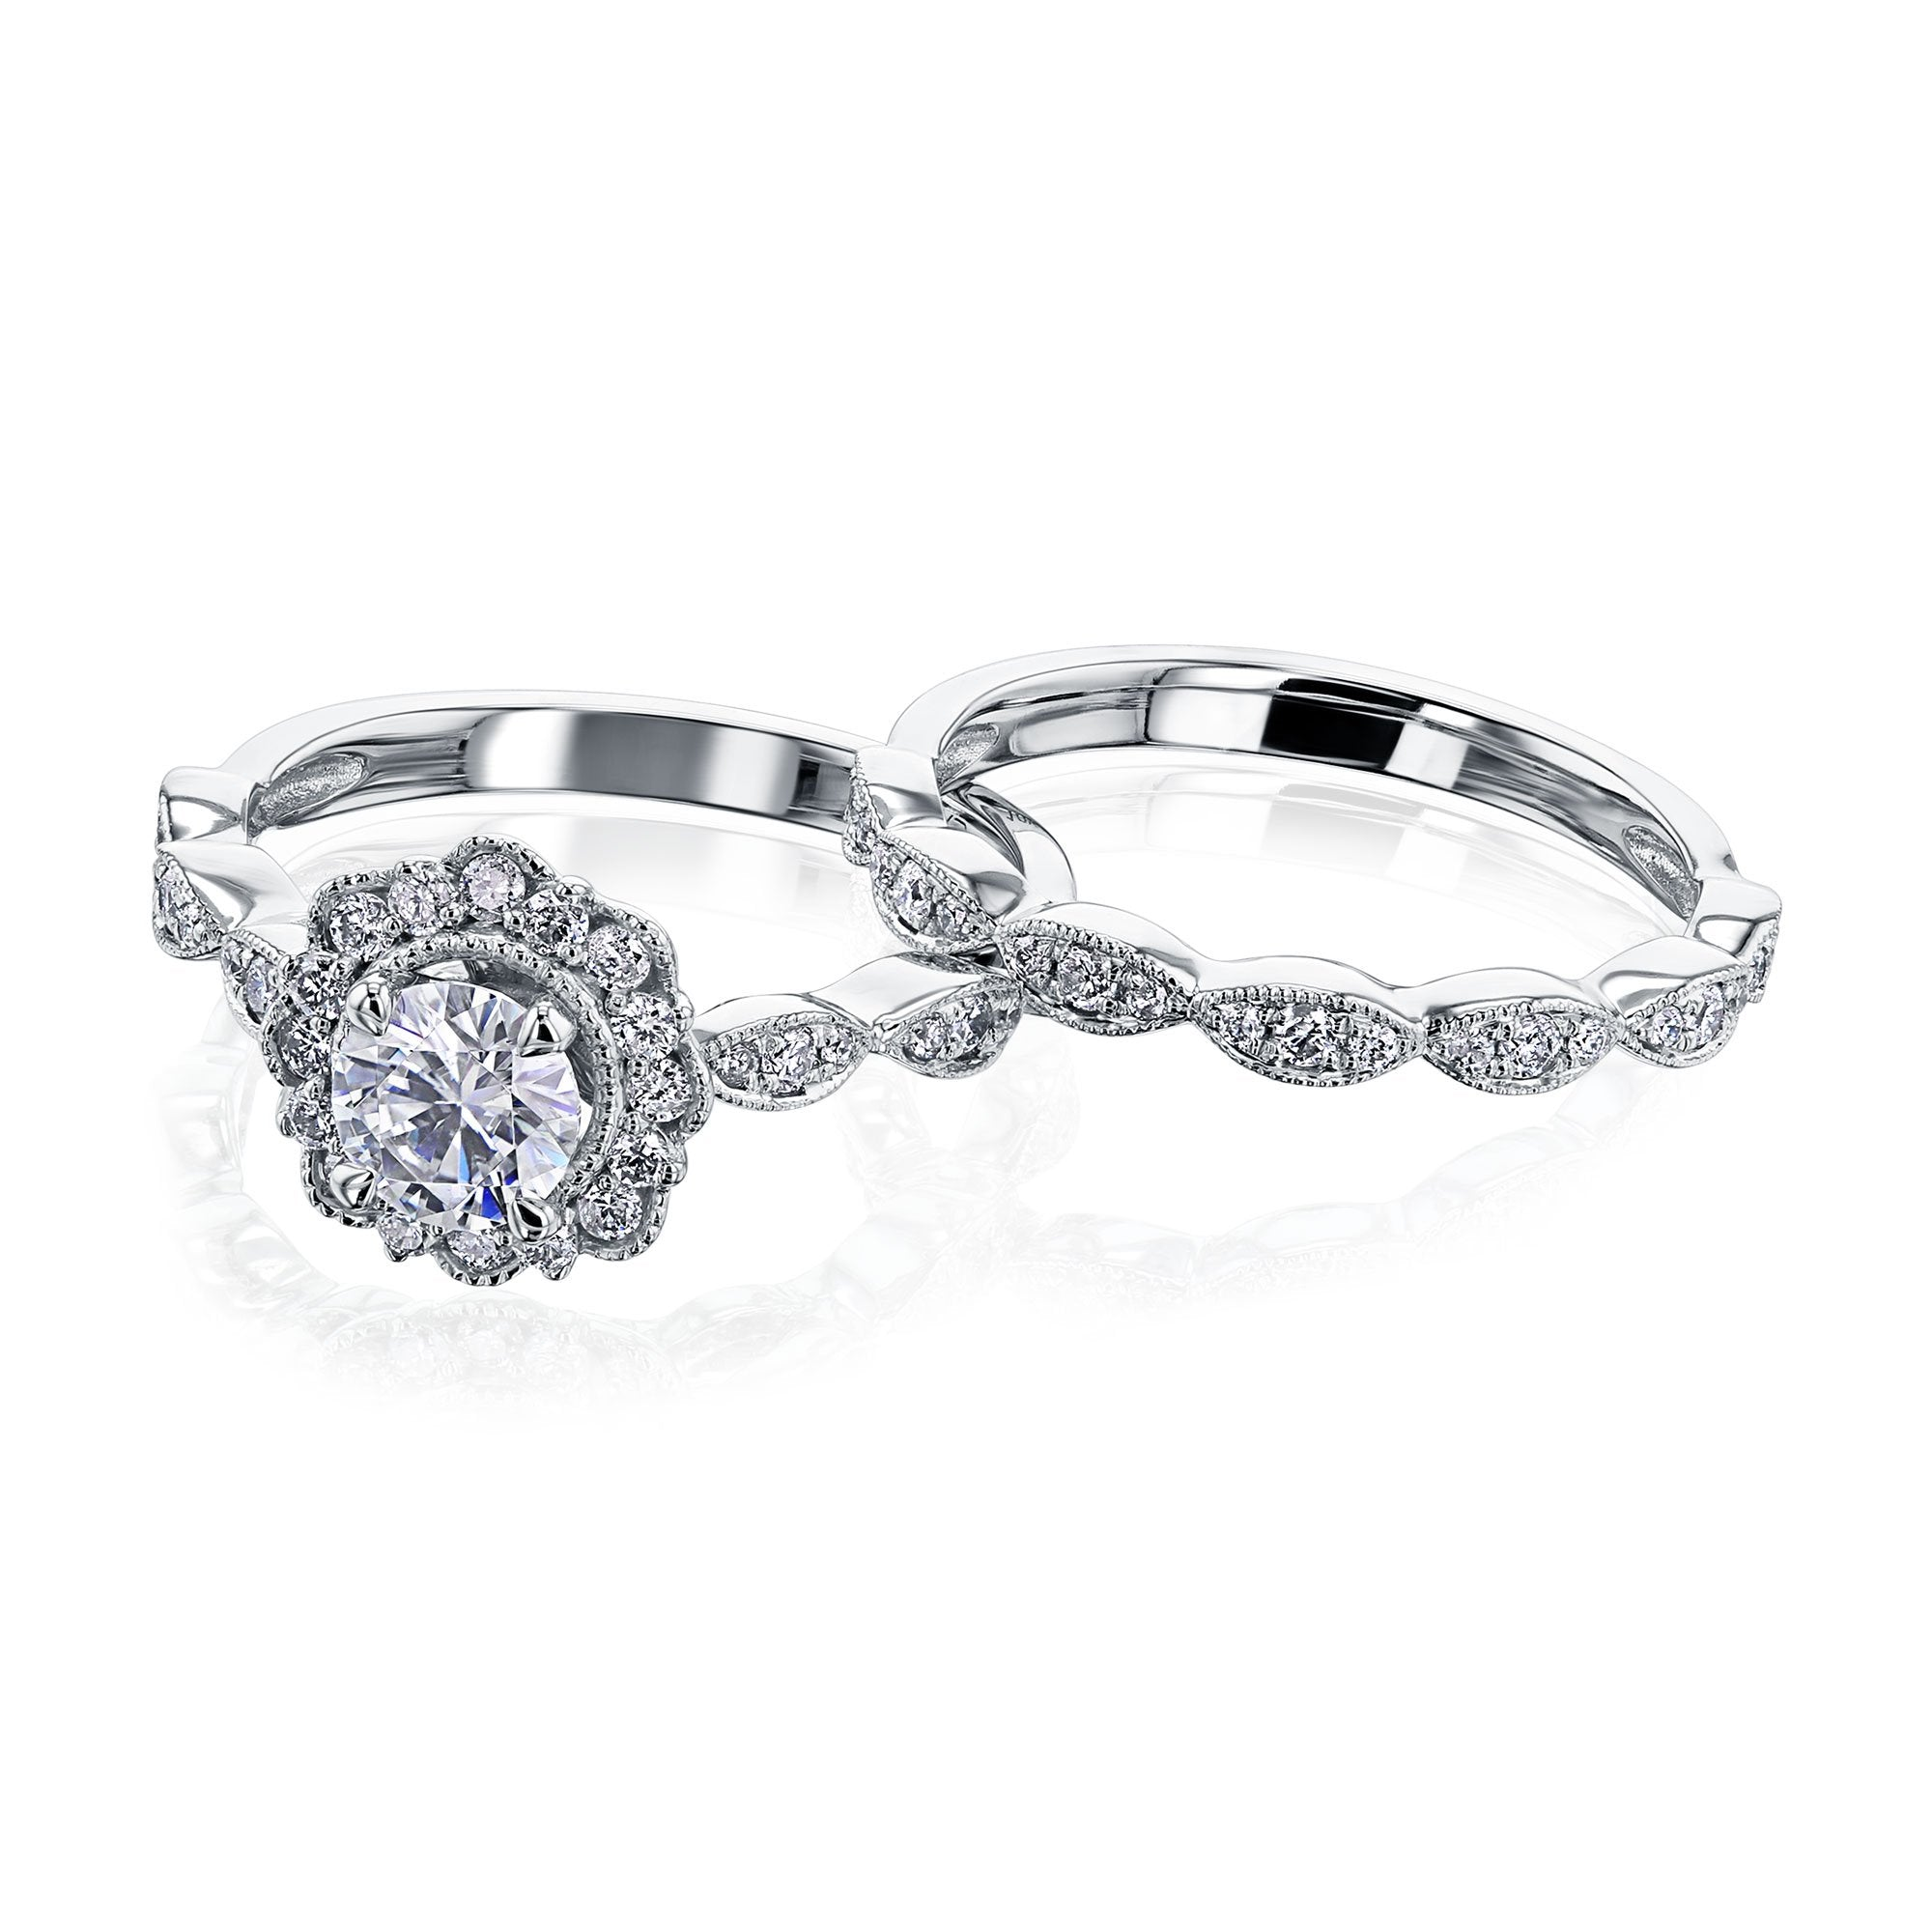 Discounts The Floral Spring Diamond Bridal Set - 5.5